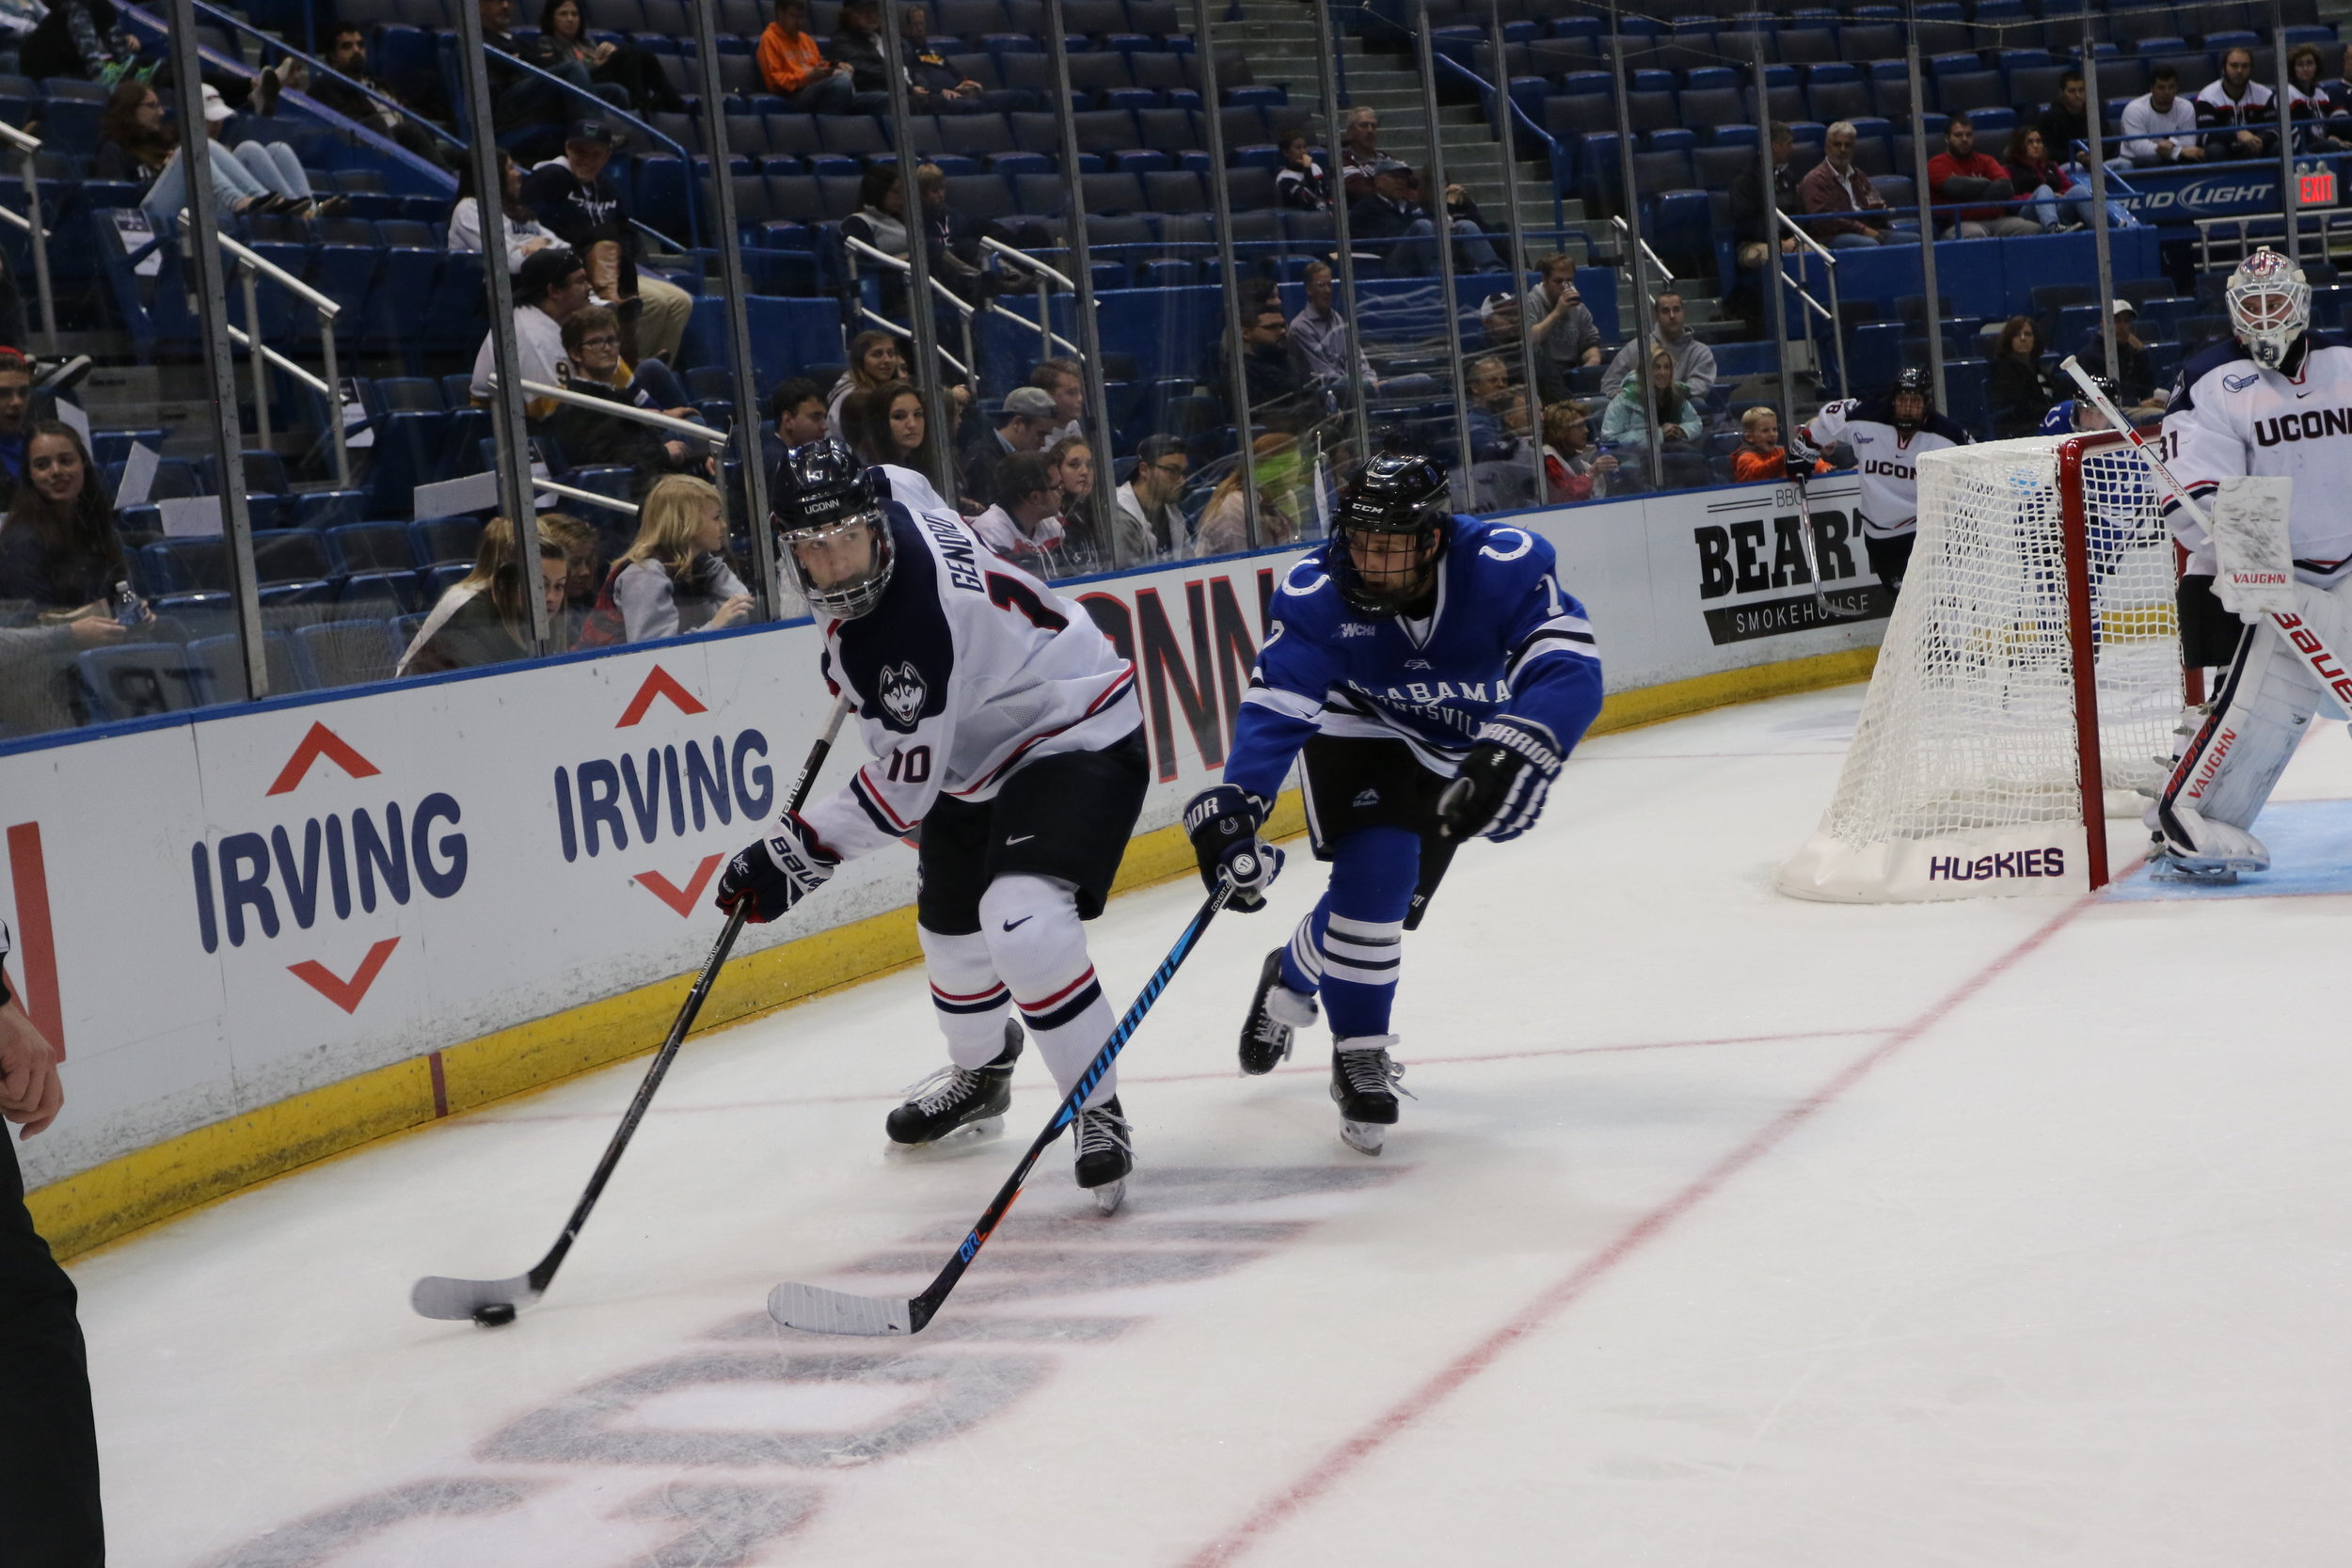 Sophomore defenseman Miles Gendron (#10) evades an Alabama-Huntsville defender as goaltender Rob Nichols (#31) looks on during the Huskies' second game of the weekend on Saturday Oct. 8, 2016 at the XL Center. The Huskies swept the weekend series outscoring the Chargers 10-0. (Ruohan Li/The Daily Campus)